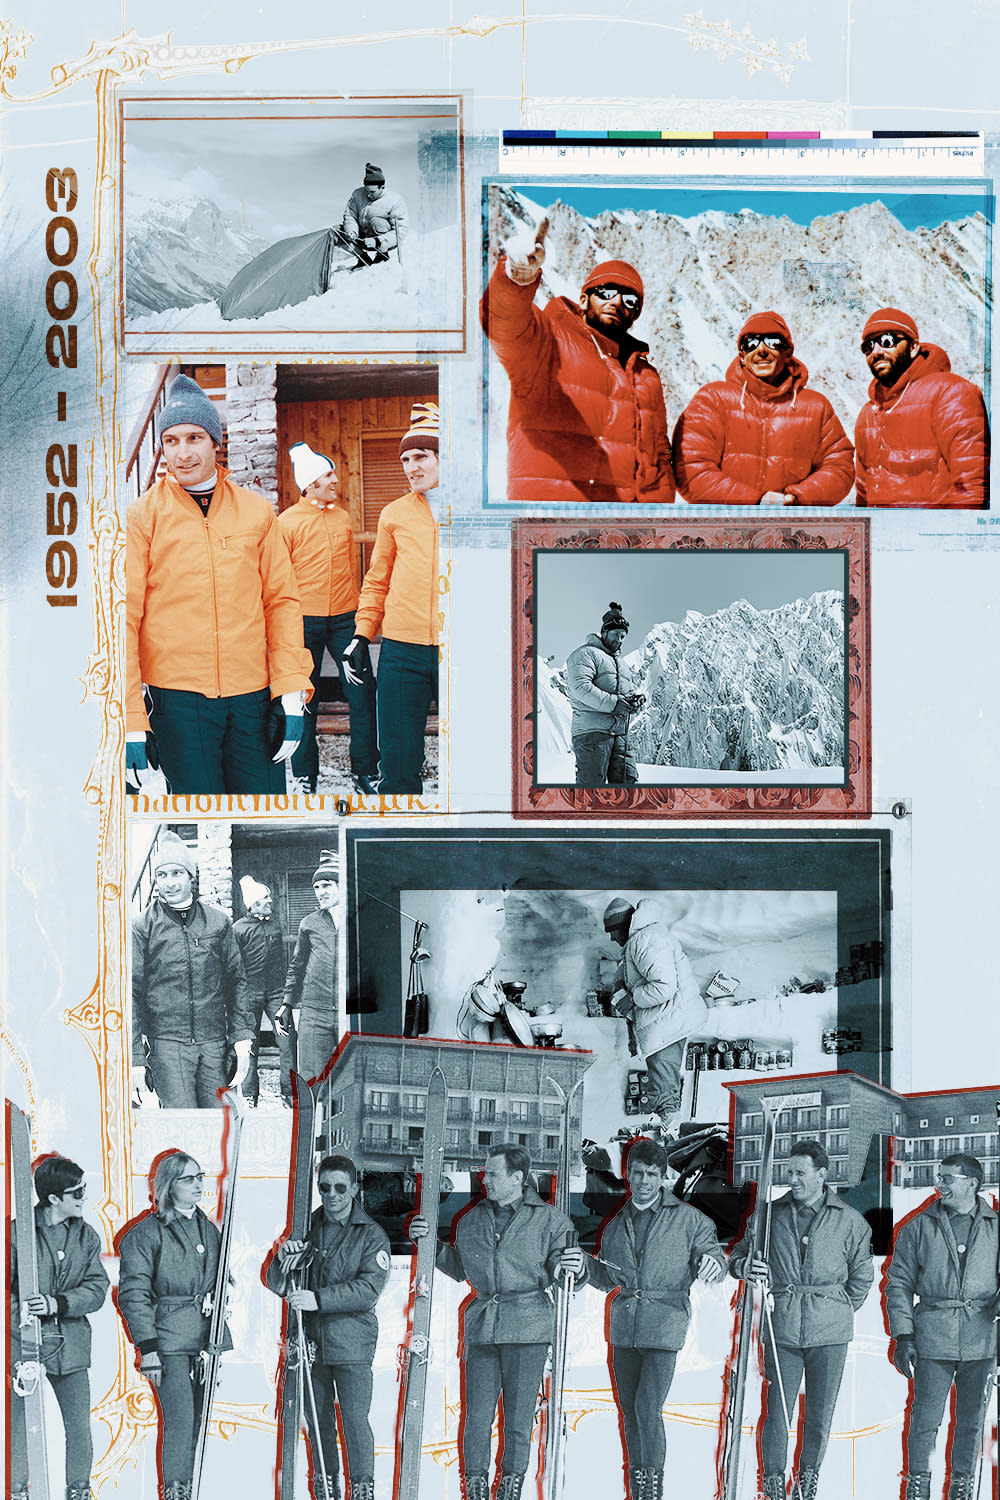 Moncler Eternal with Remo Ruffini - END. Interview image featuring a collage of images documenting Moncler's past.